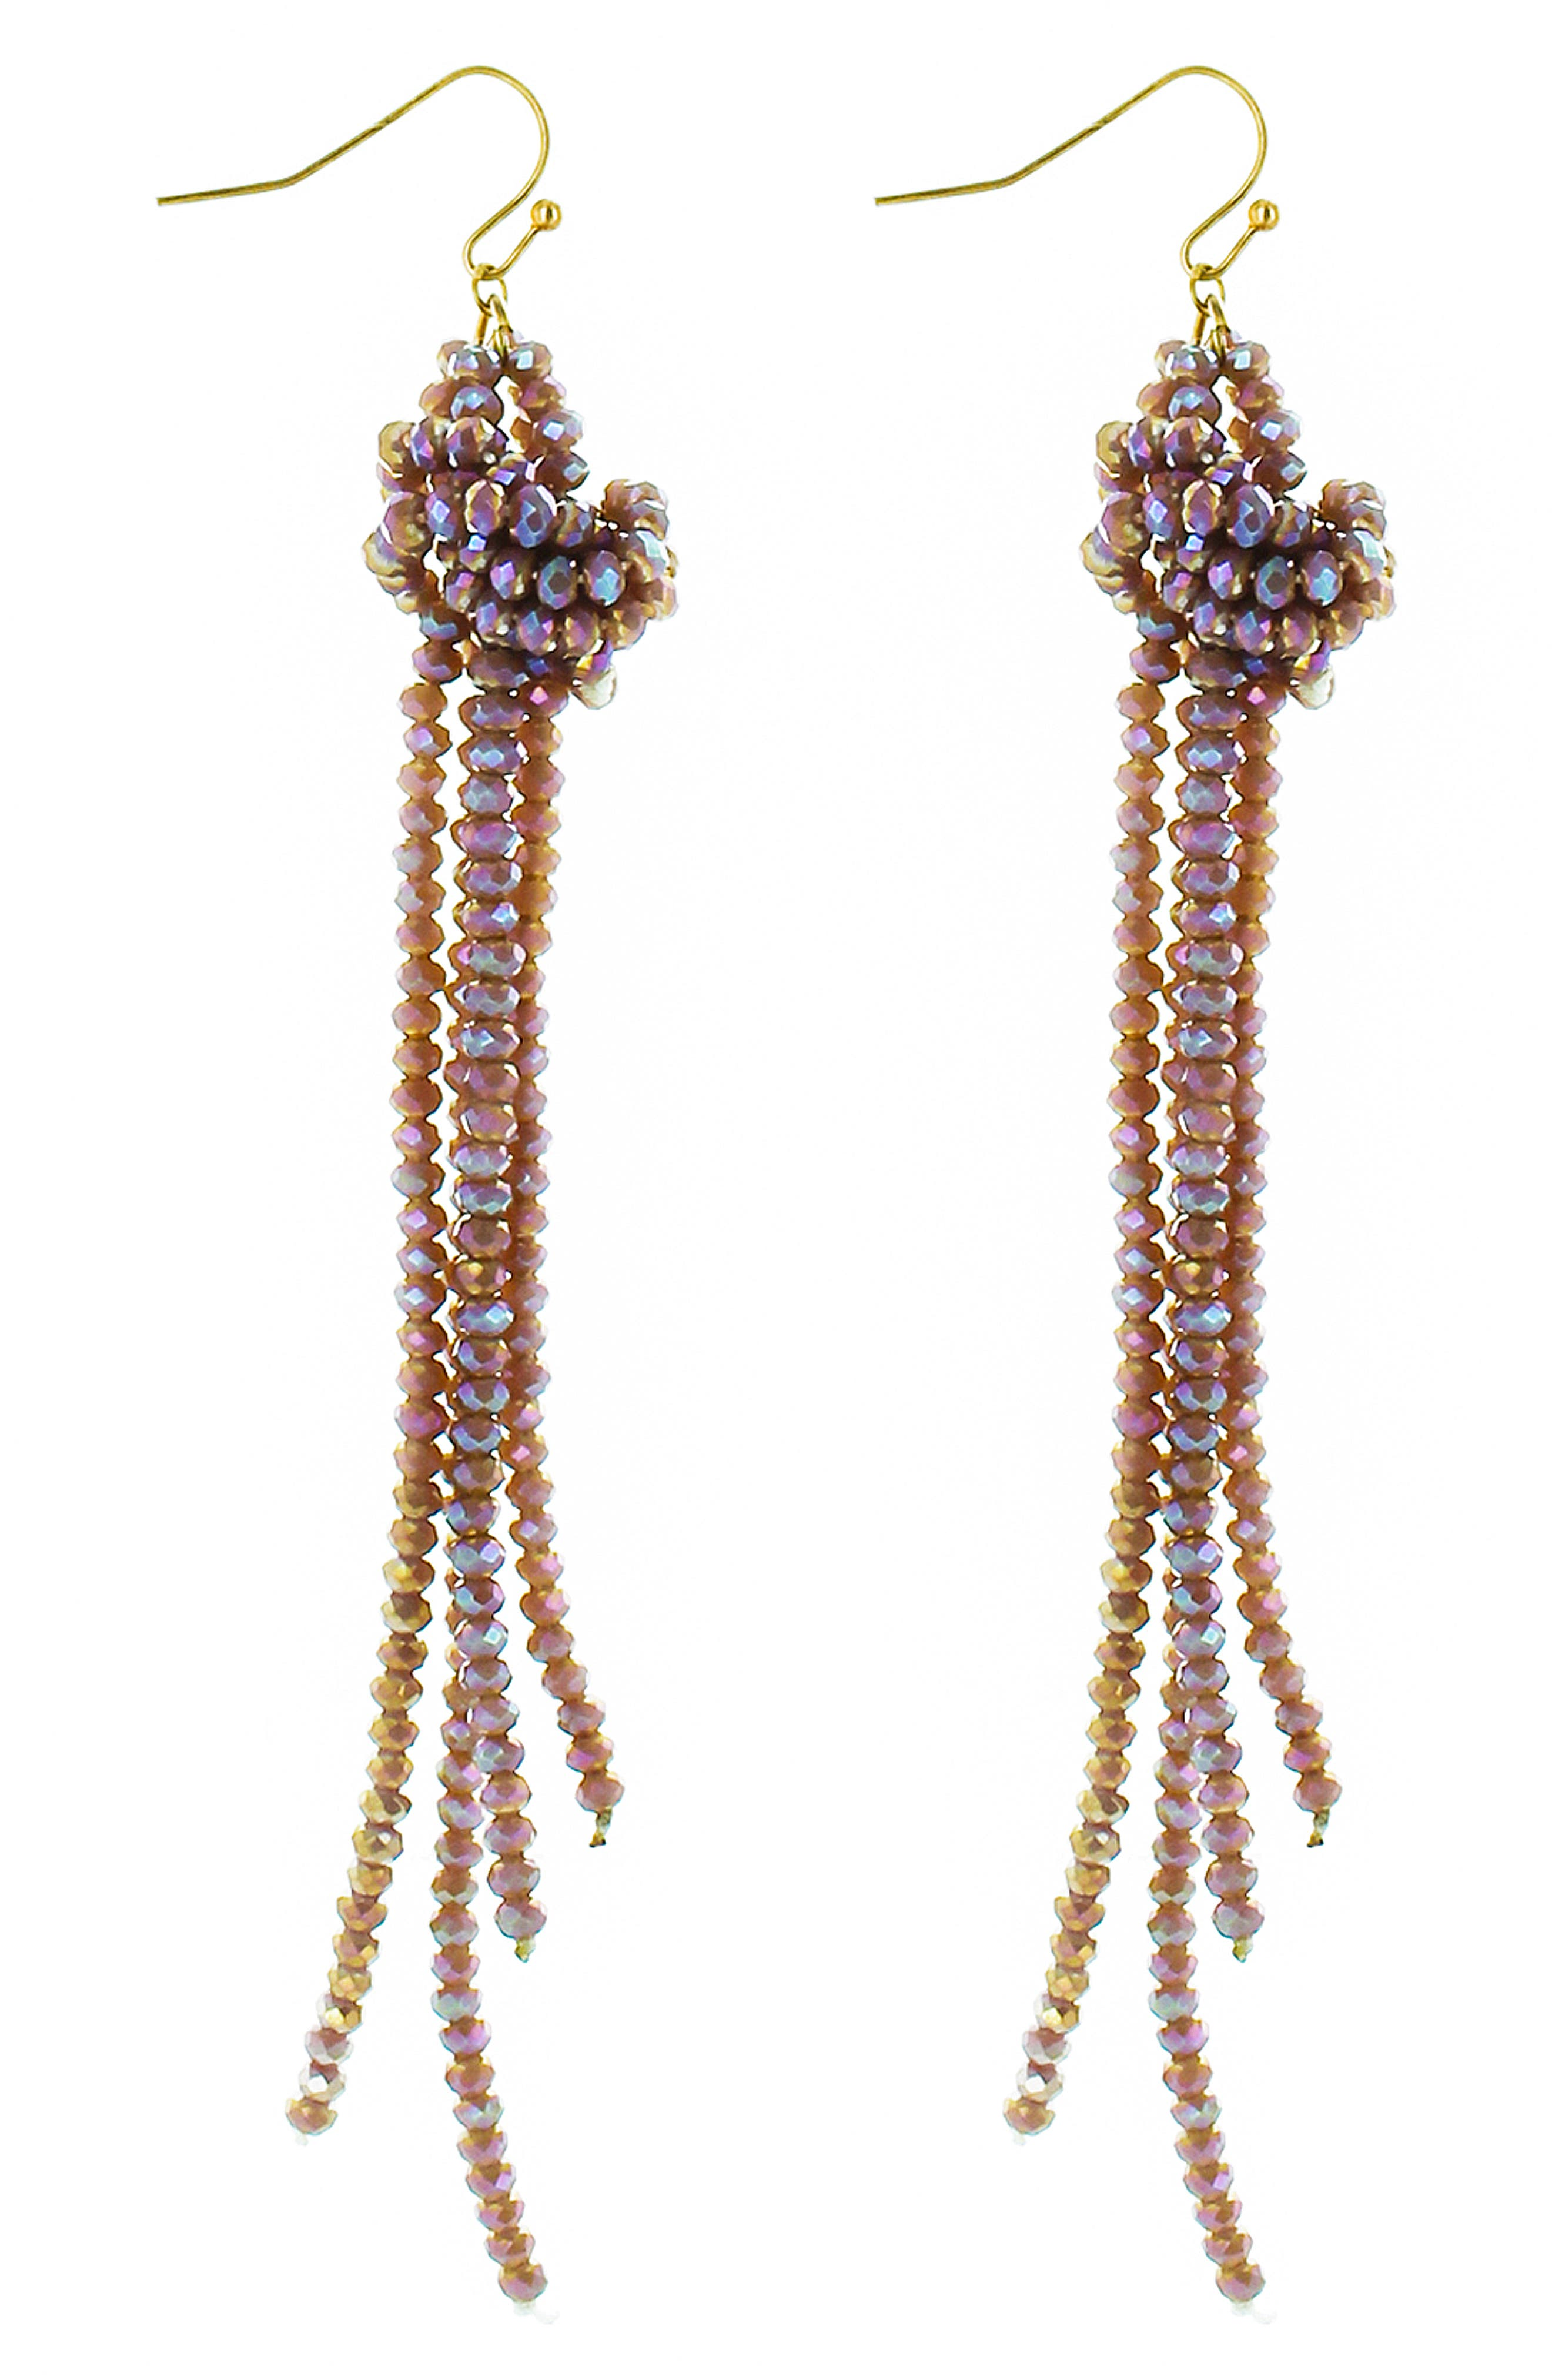 Crystal Knot Tassel Earrings,                         Main,                         color, LIGHT PURPLE